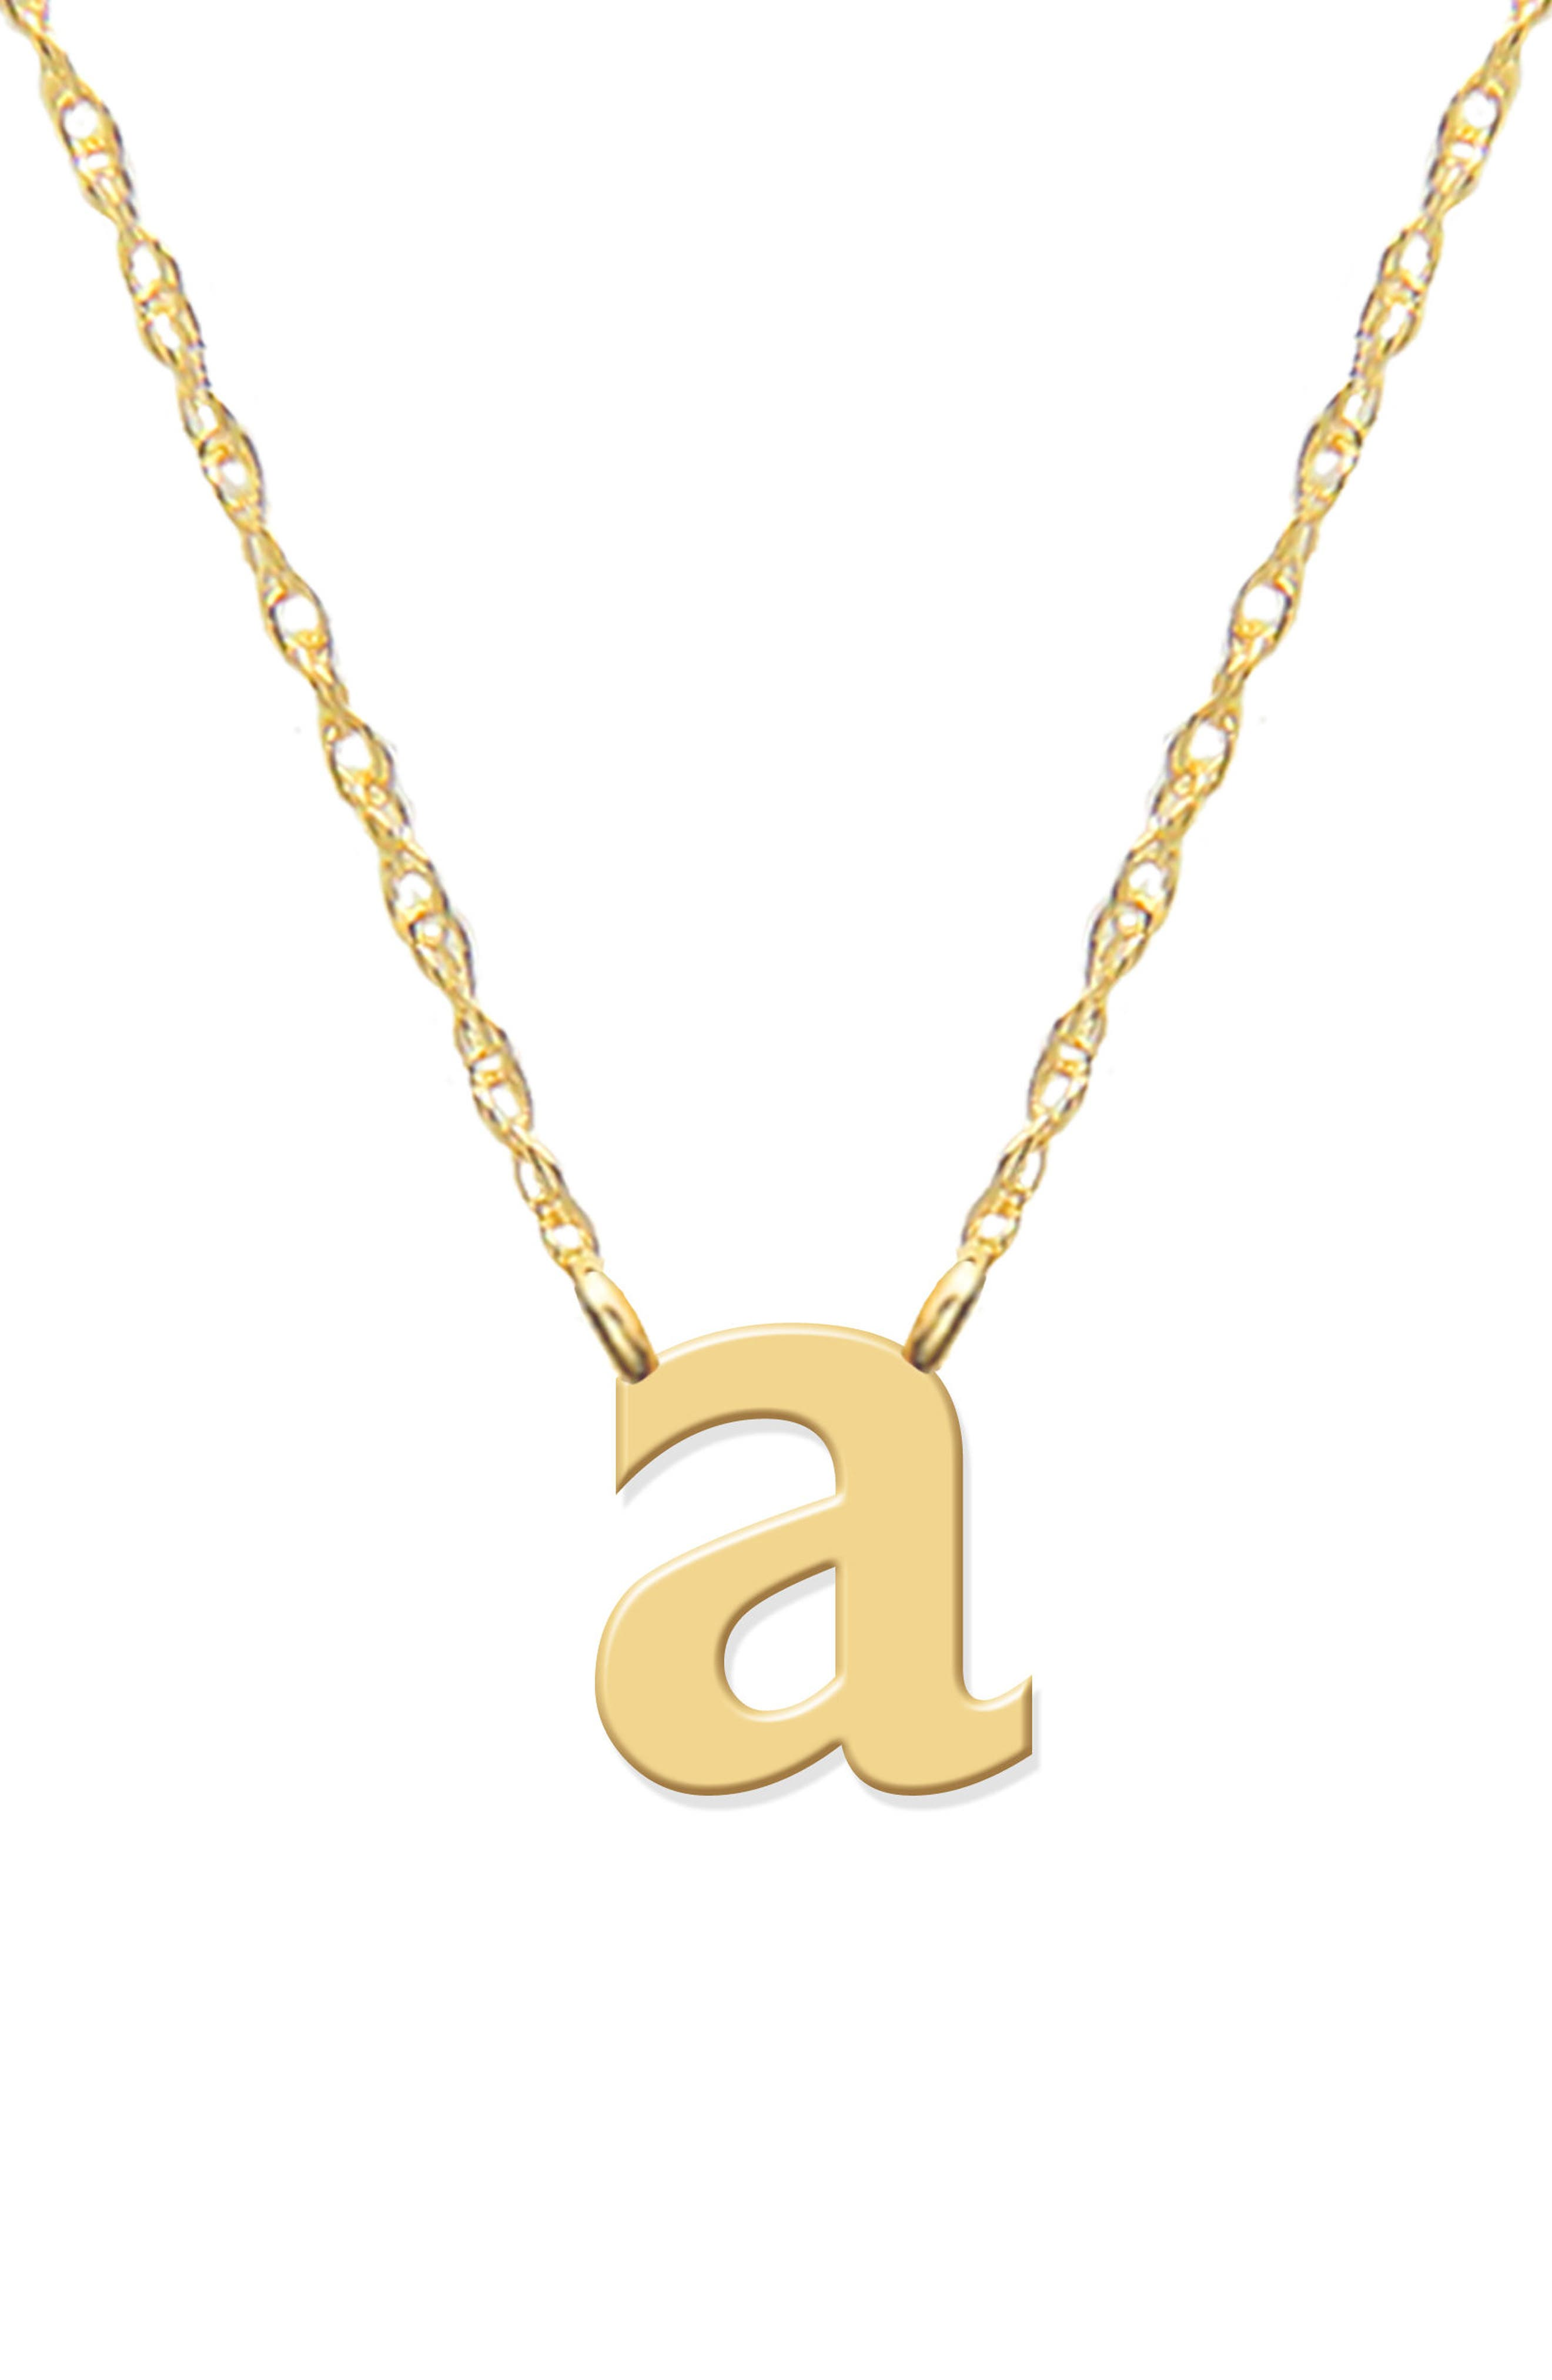 Lowercase Initial Pendant Necklace,                         Main,                         color, GOLD- A